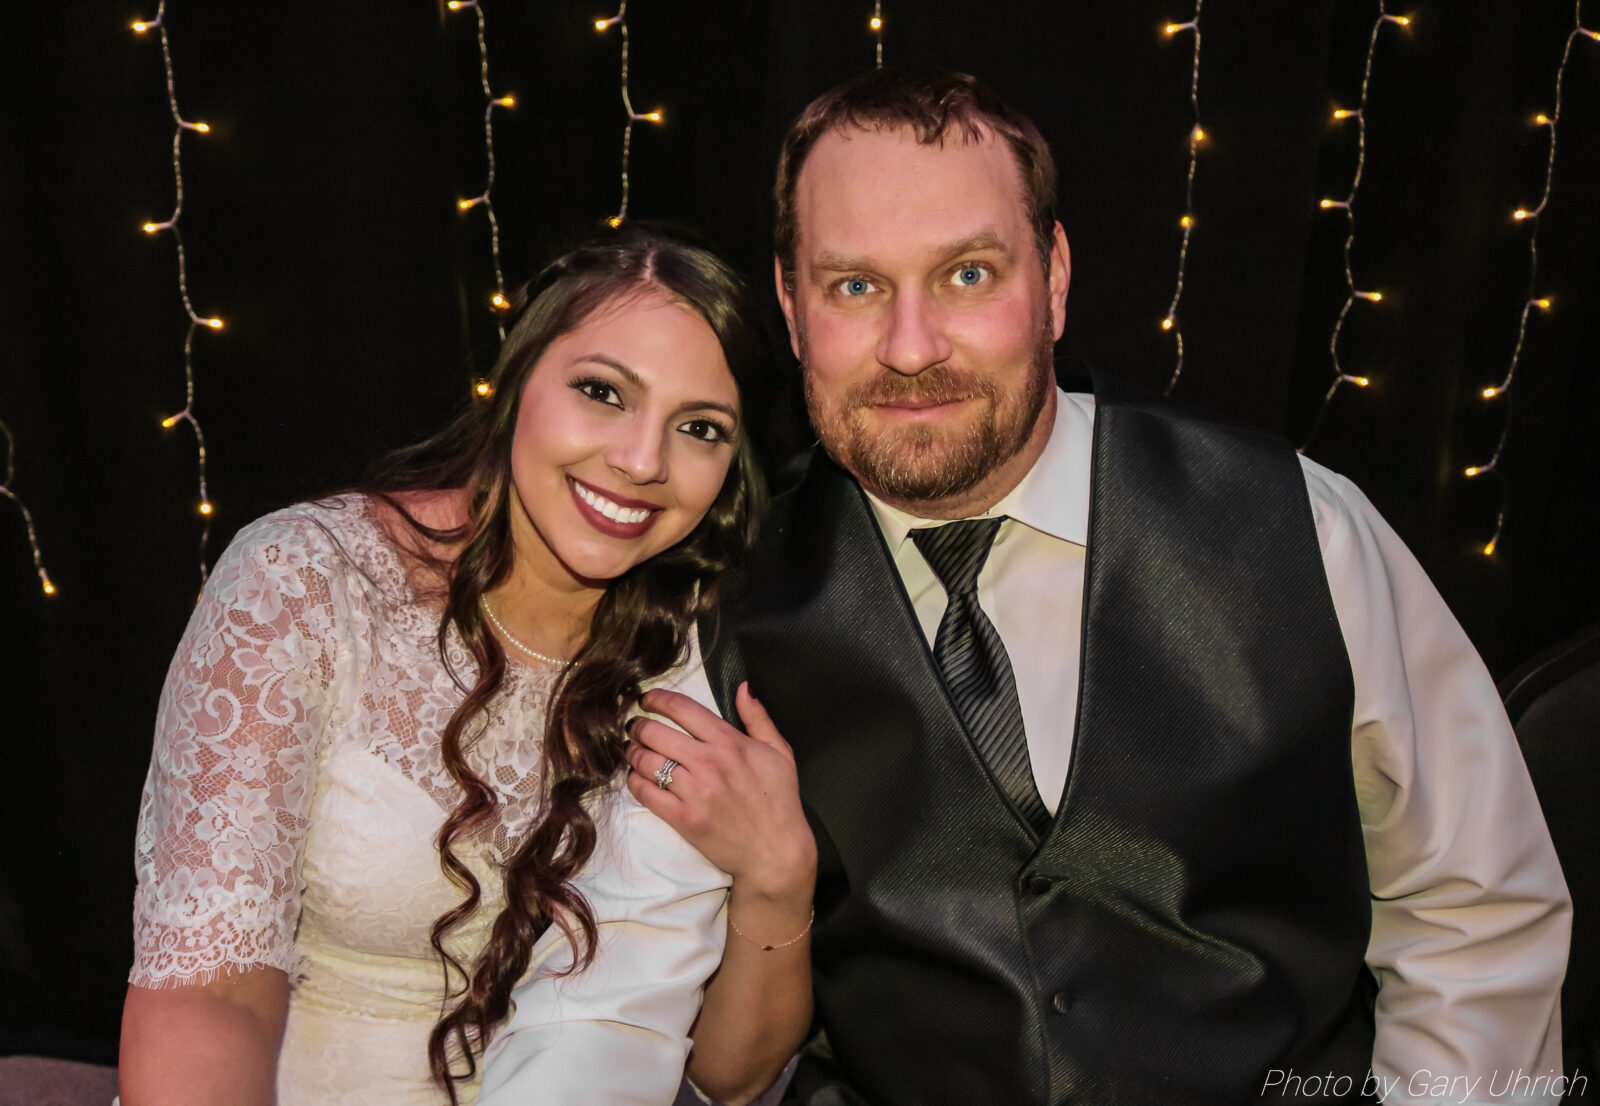 Heather Dan Wedding, Weborg 21 Centre, Gering, The DJ Music System, Scottsbluff, Nebraska, January Wedding, 2020 Wedding